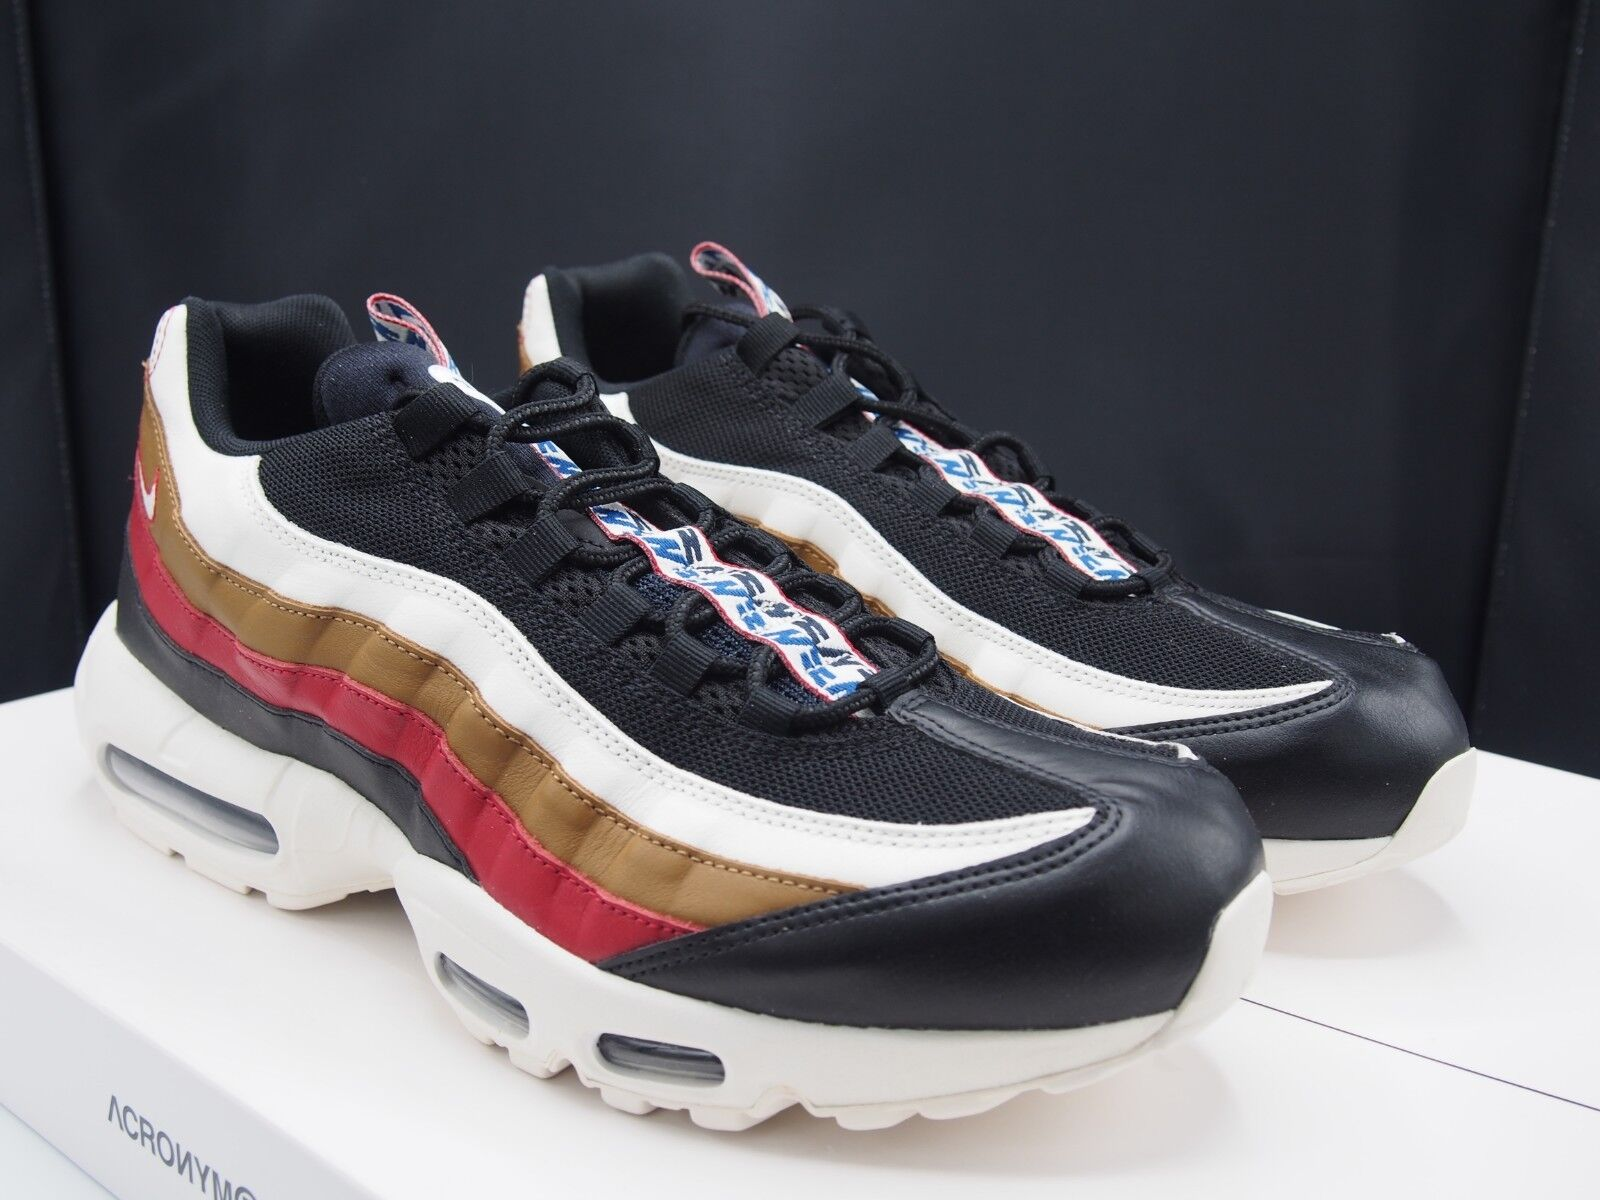 437e51f11e Nike Air Max 95 TT PRM Mens SNEAKERS Aj4077-002 13 for sale online ...